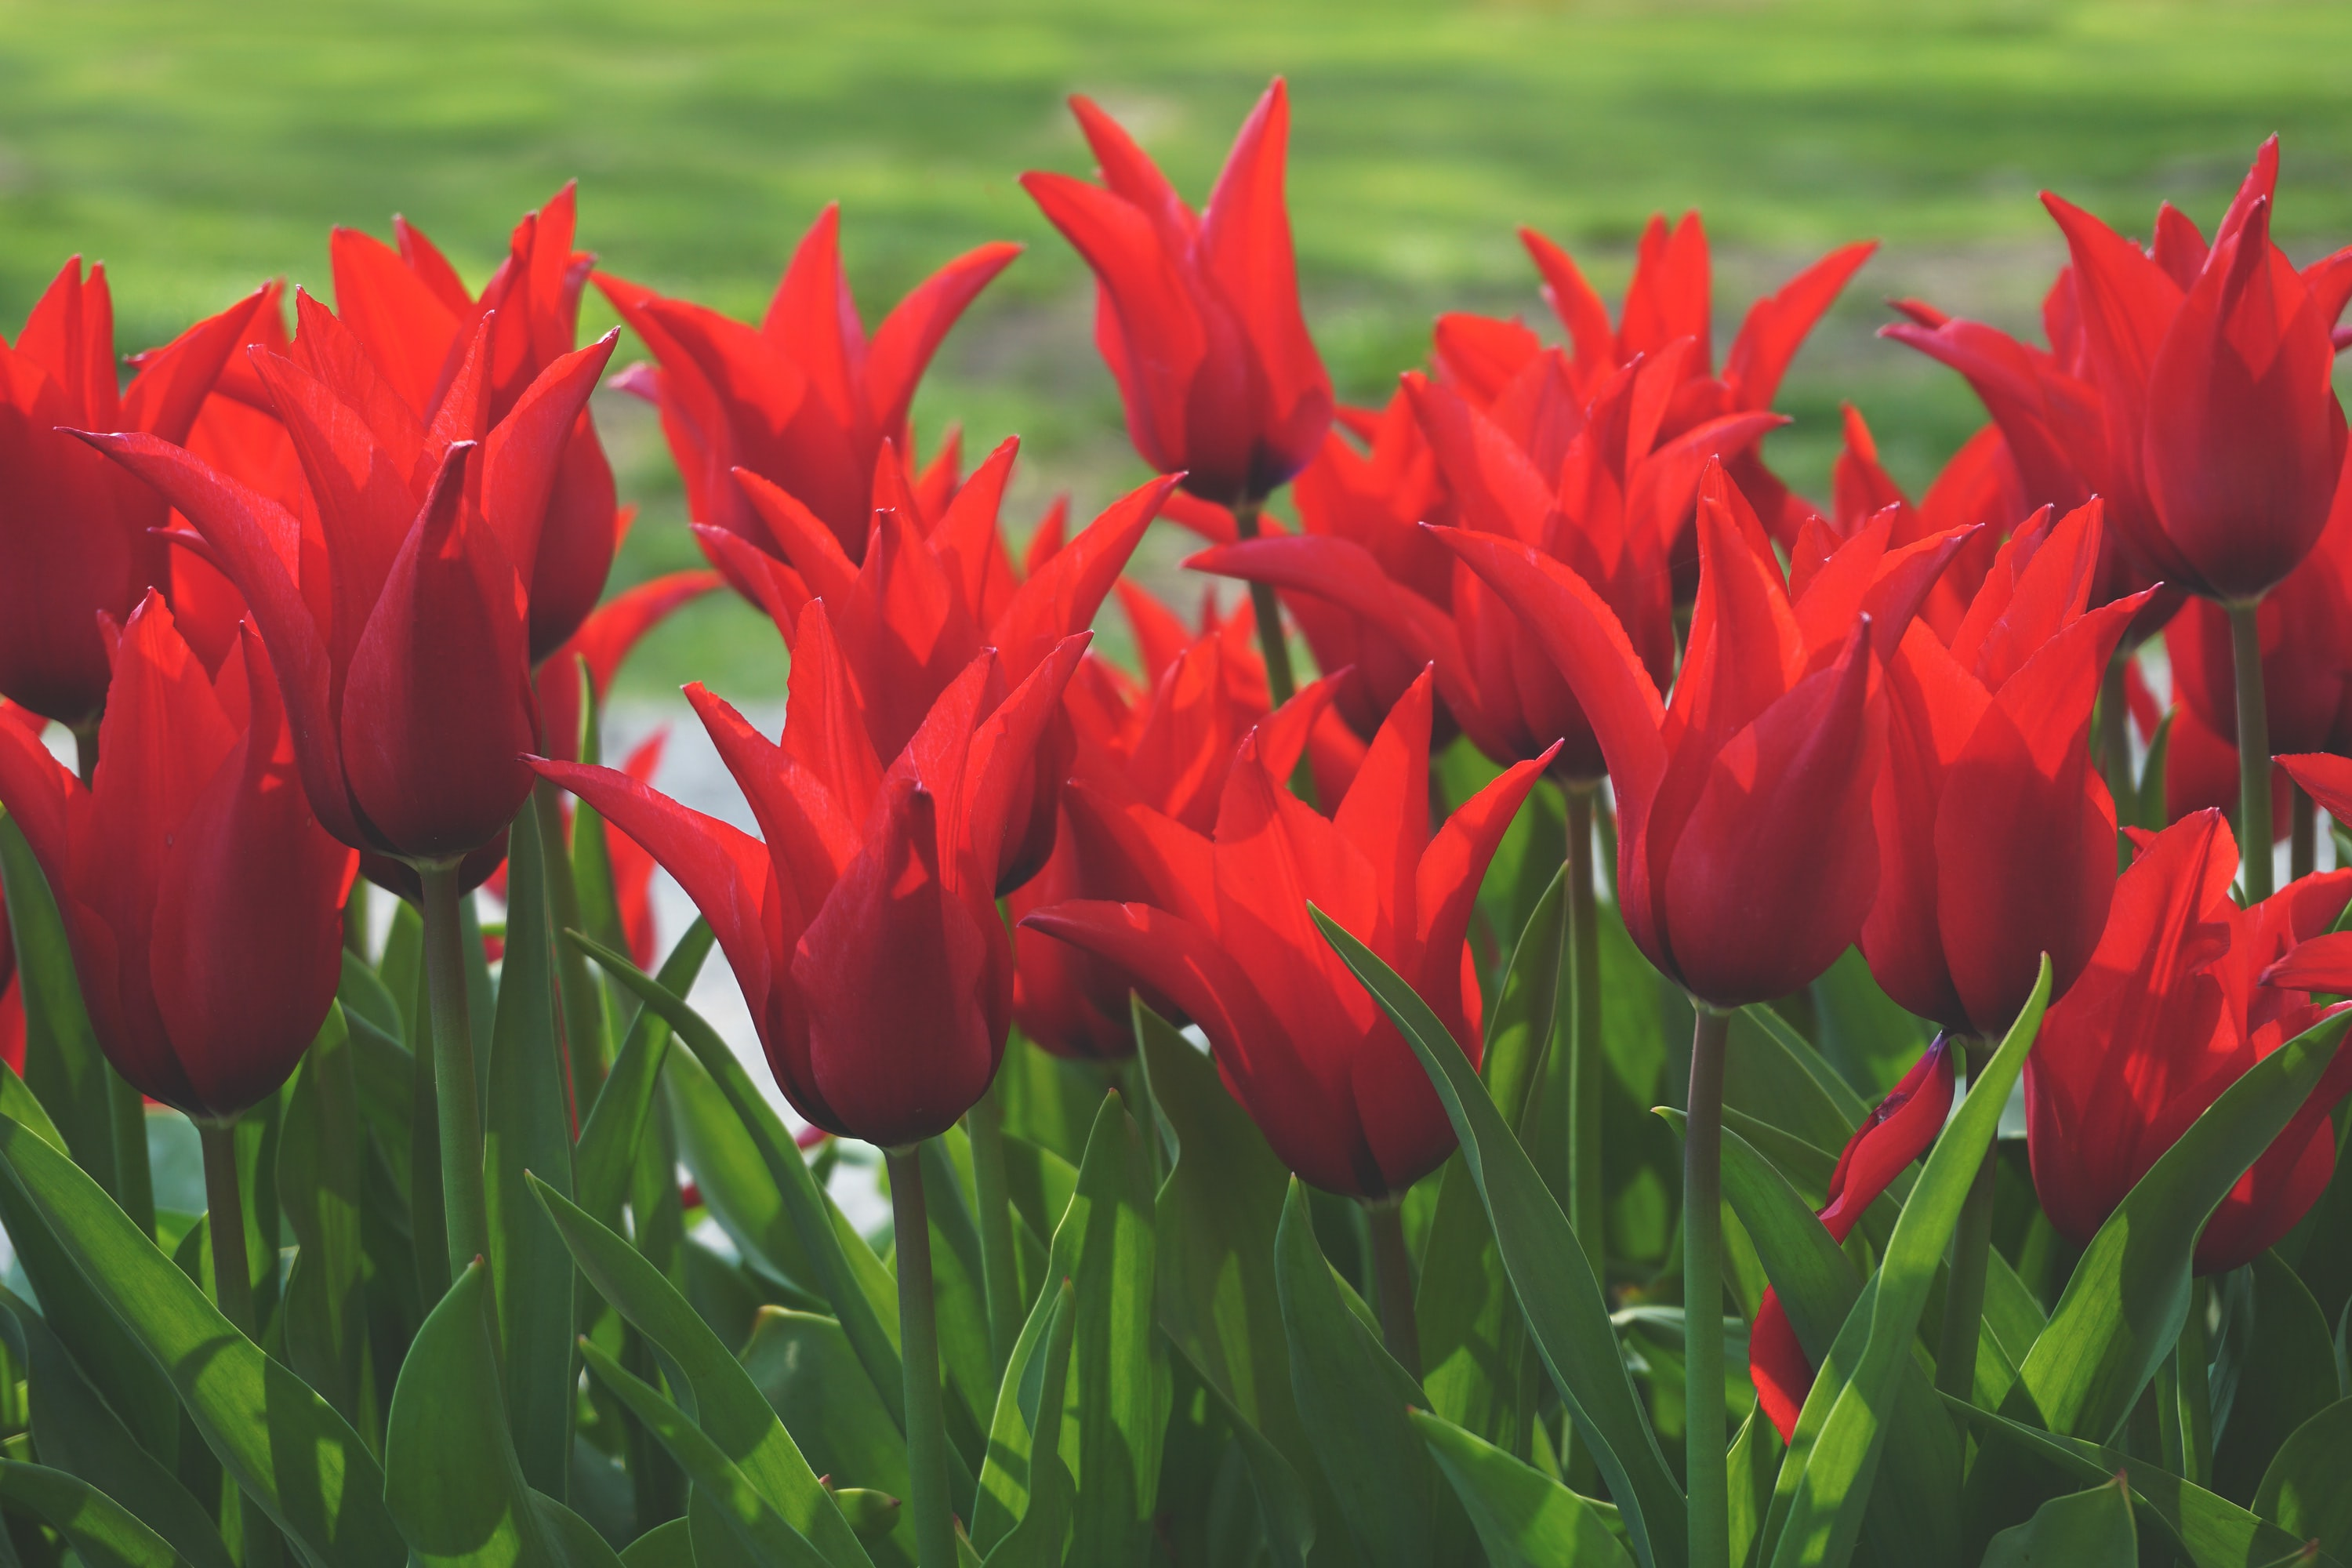 Vibrant red tulips bloom in a field